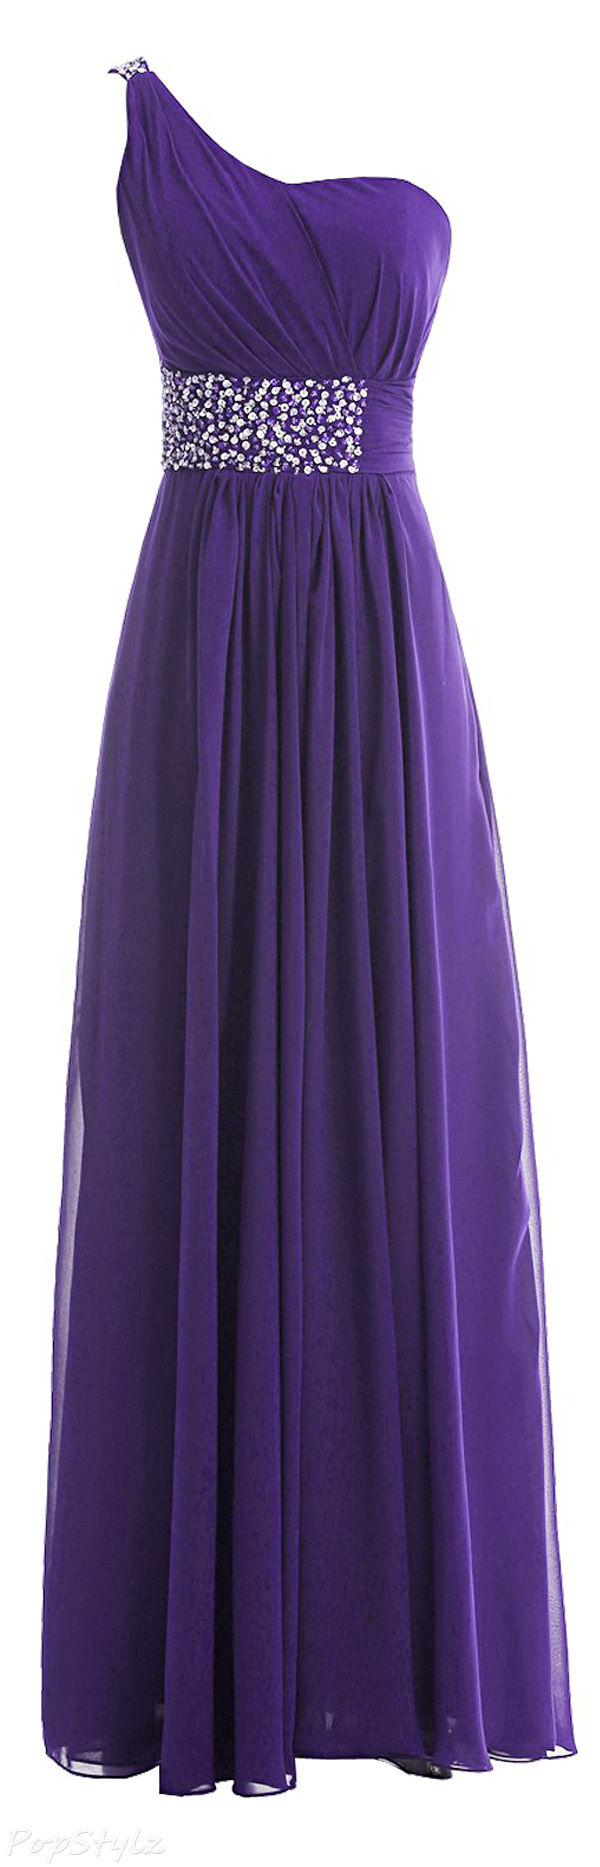 Sunvary One Shoulder Long Evening Gown